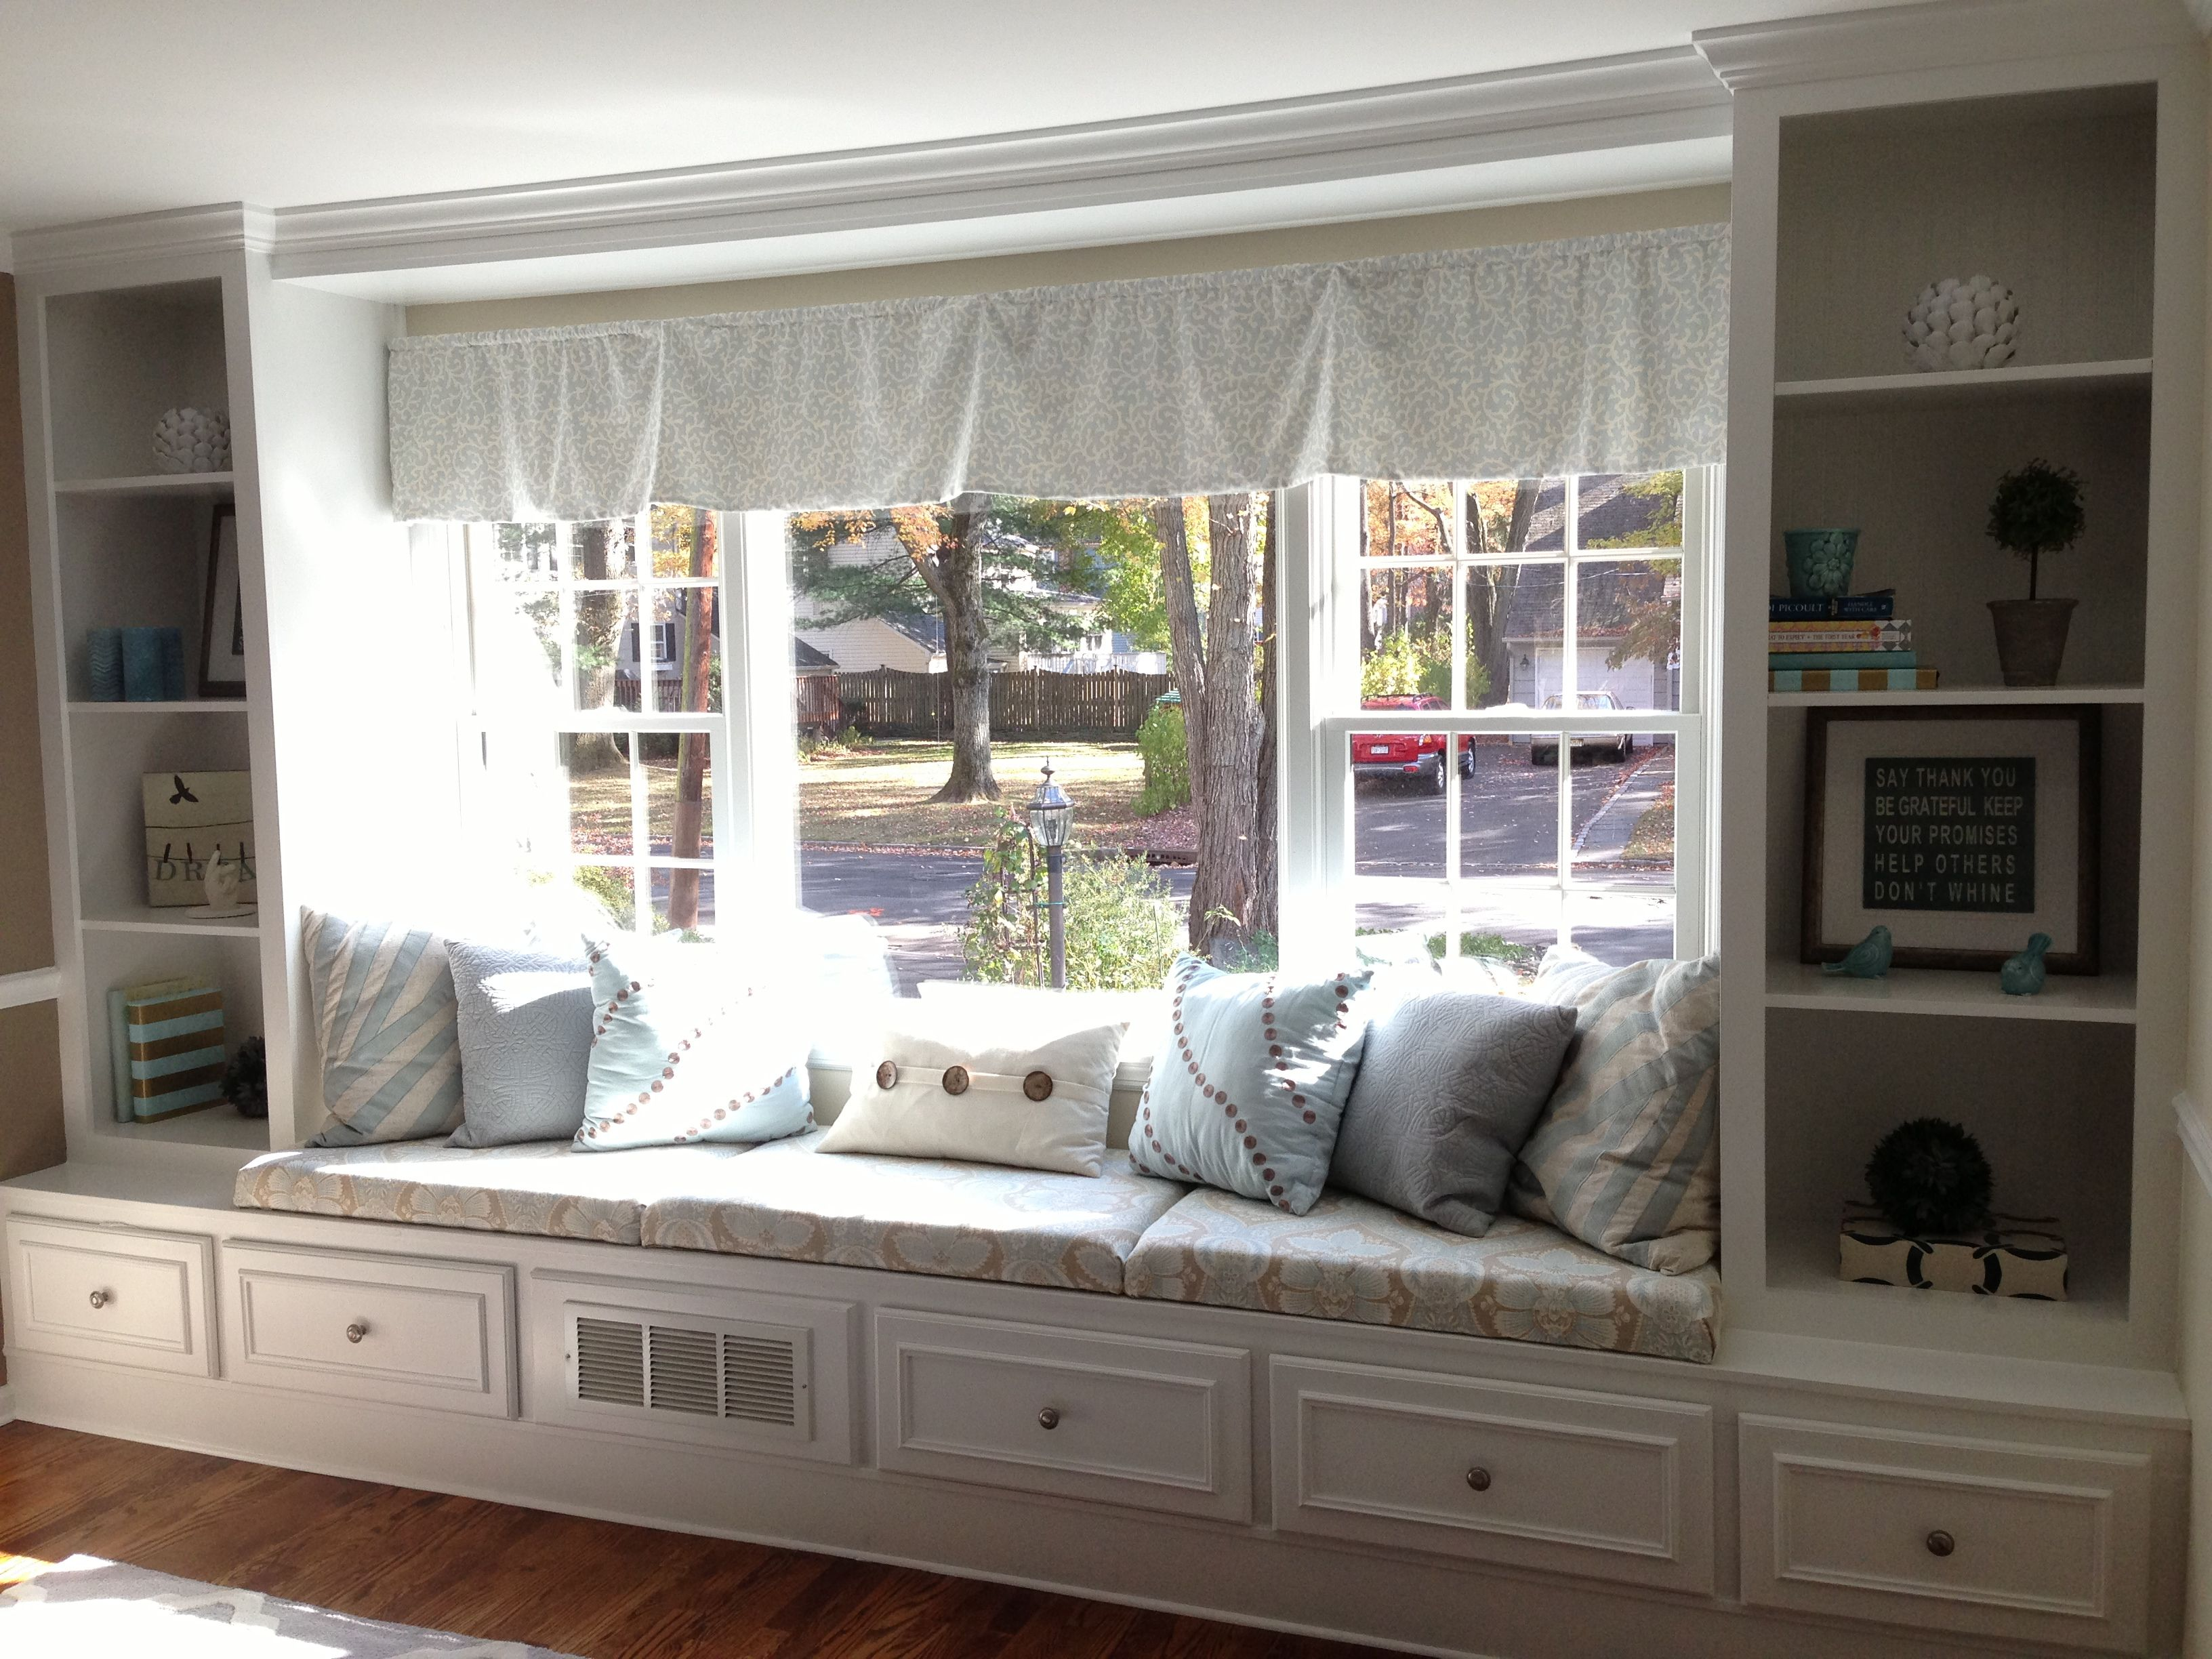 Built In Window Seat Shelves Drawers Living Room Windows Home Window Seat